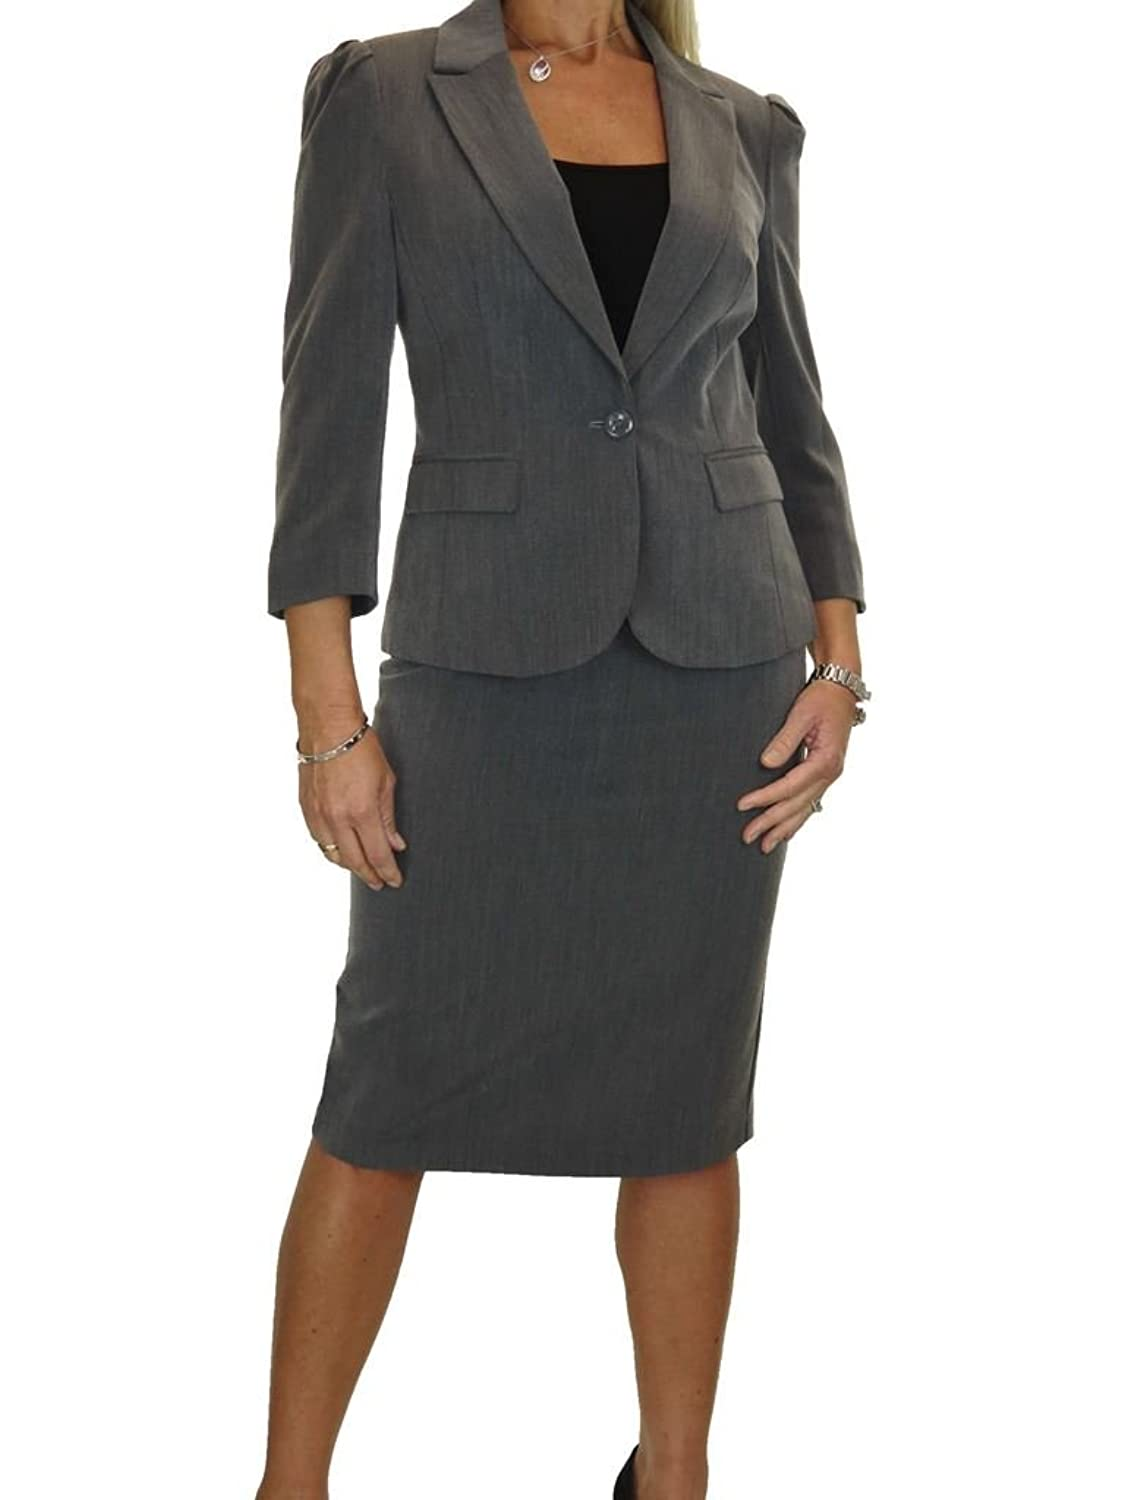 icecoolfashion Ice Fully Lined 3/4 Sleeve Washable Business Office Skirt Suit 4-16